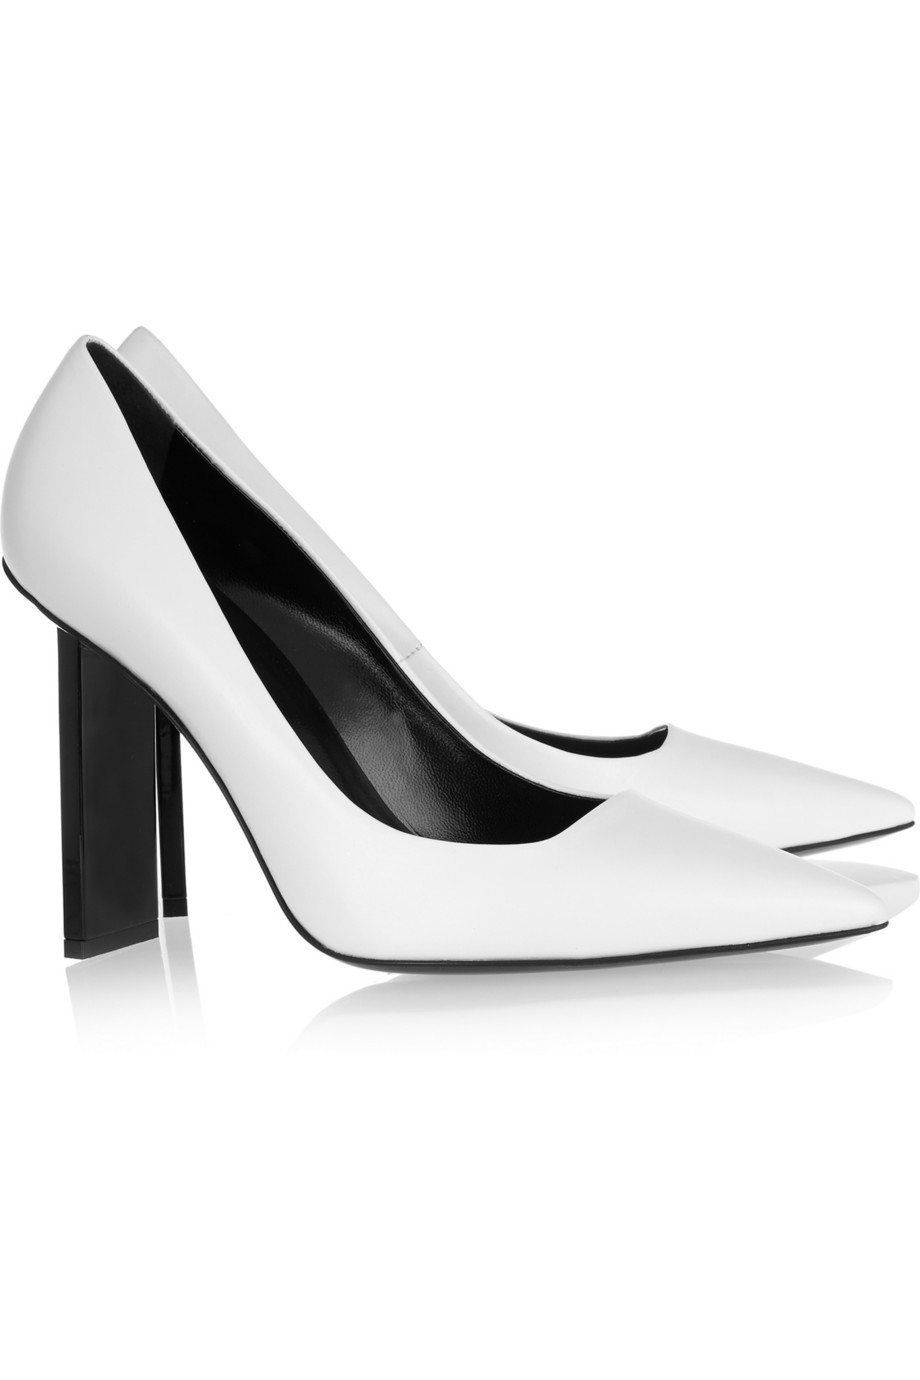 ce1f313cc18 Lyst - Pierre Hardy Leather Pumps in White